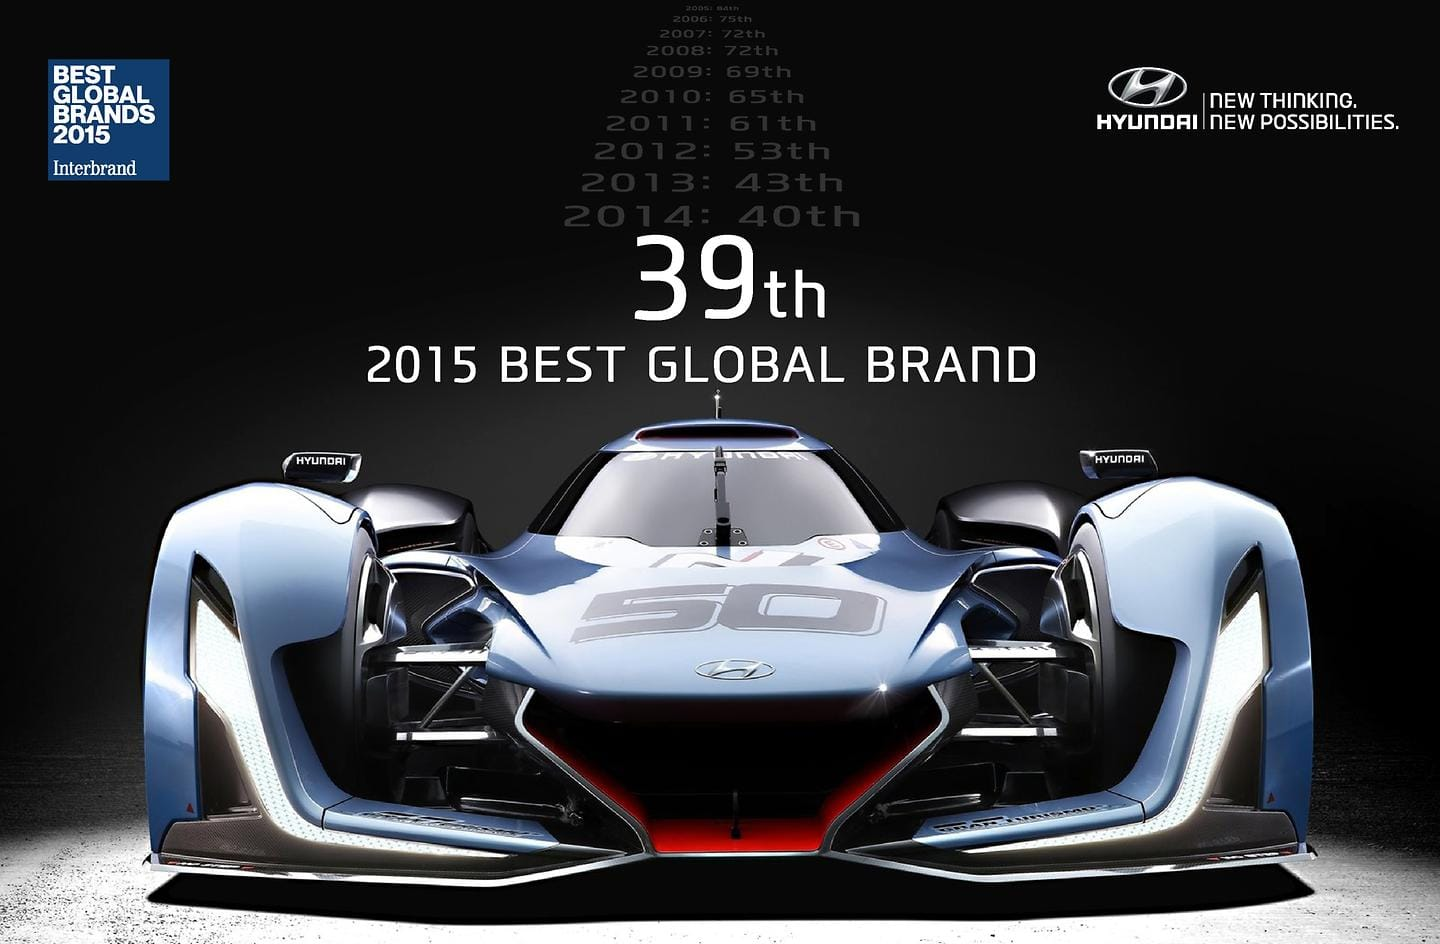 Hyundai Motor reputation once again acknowledged by Interbrand